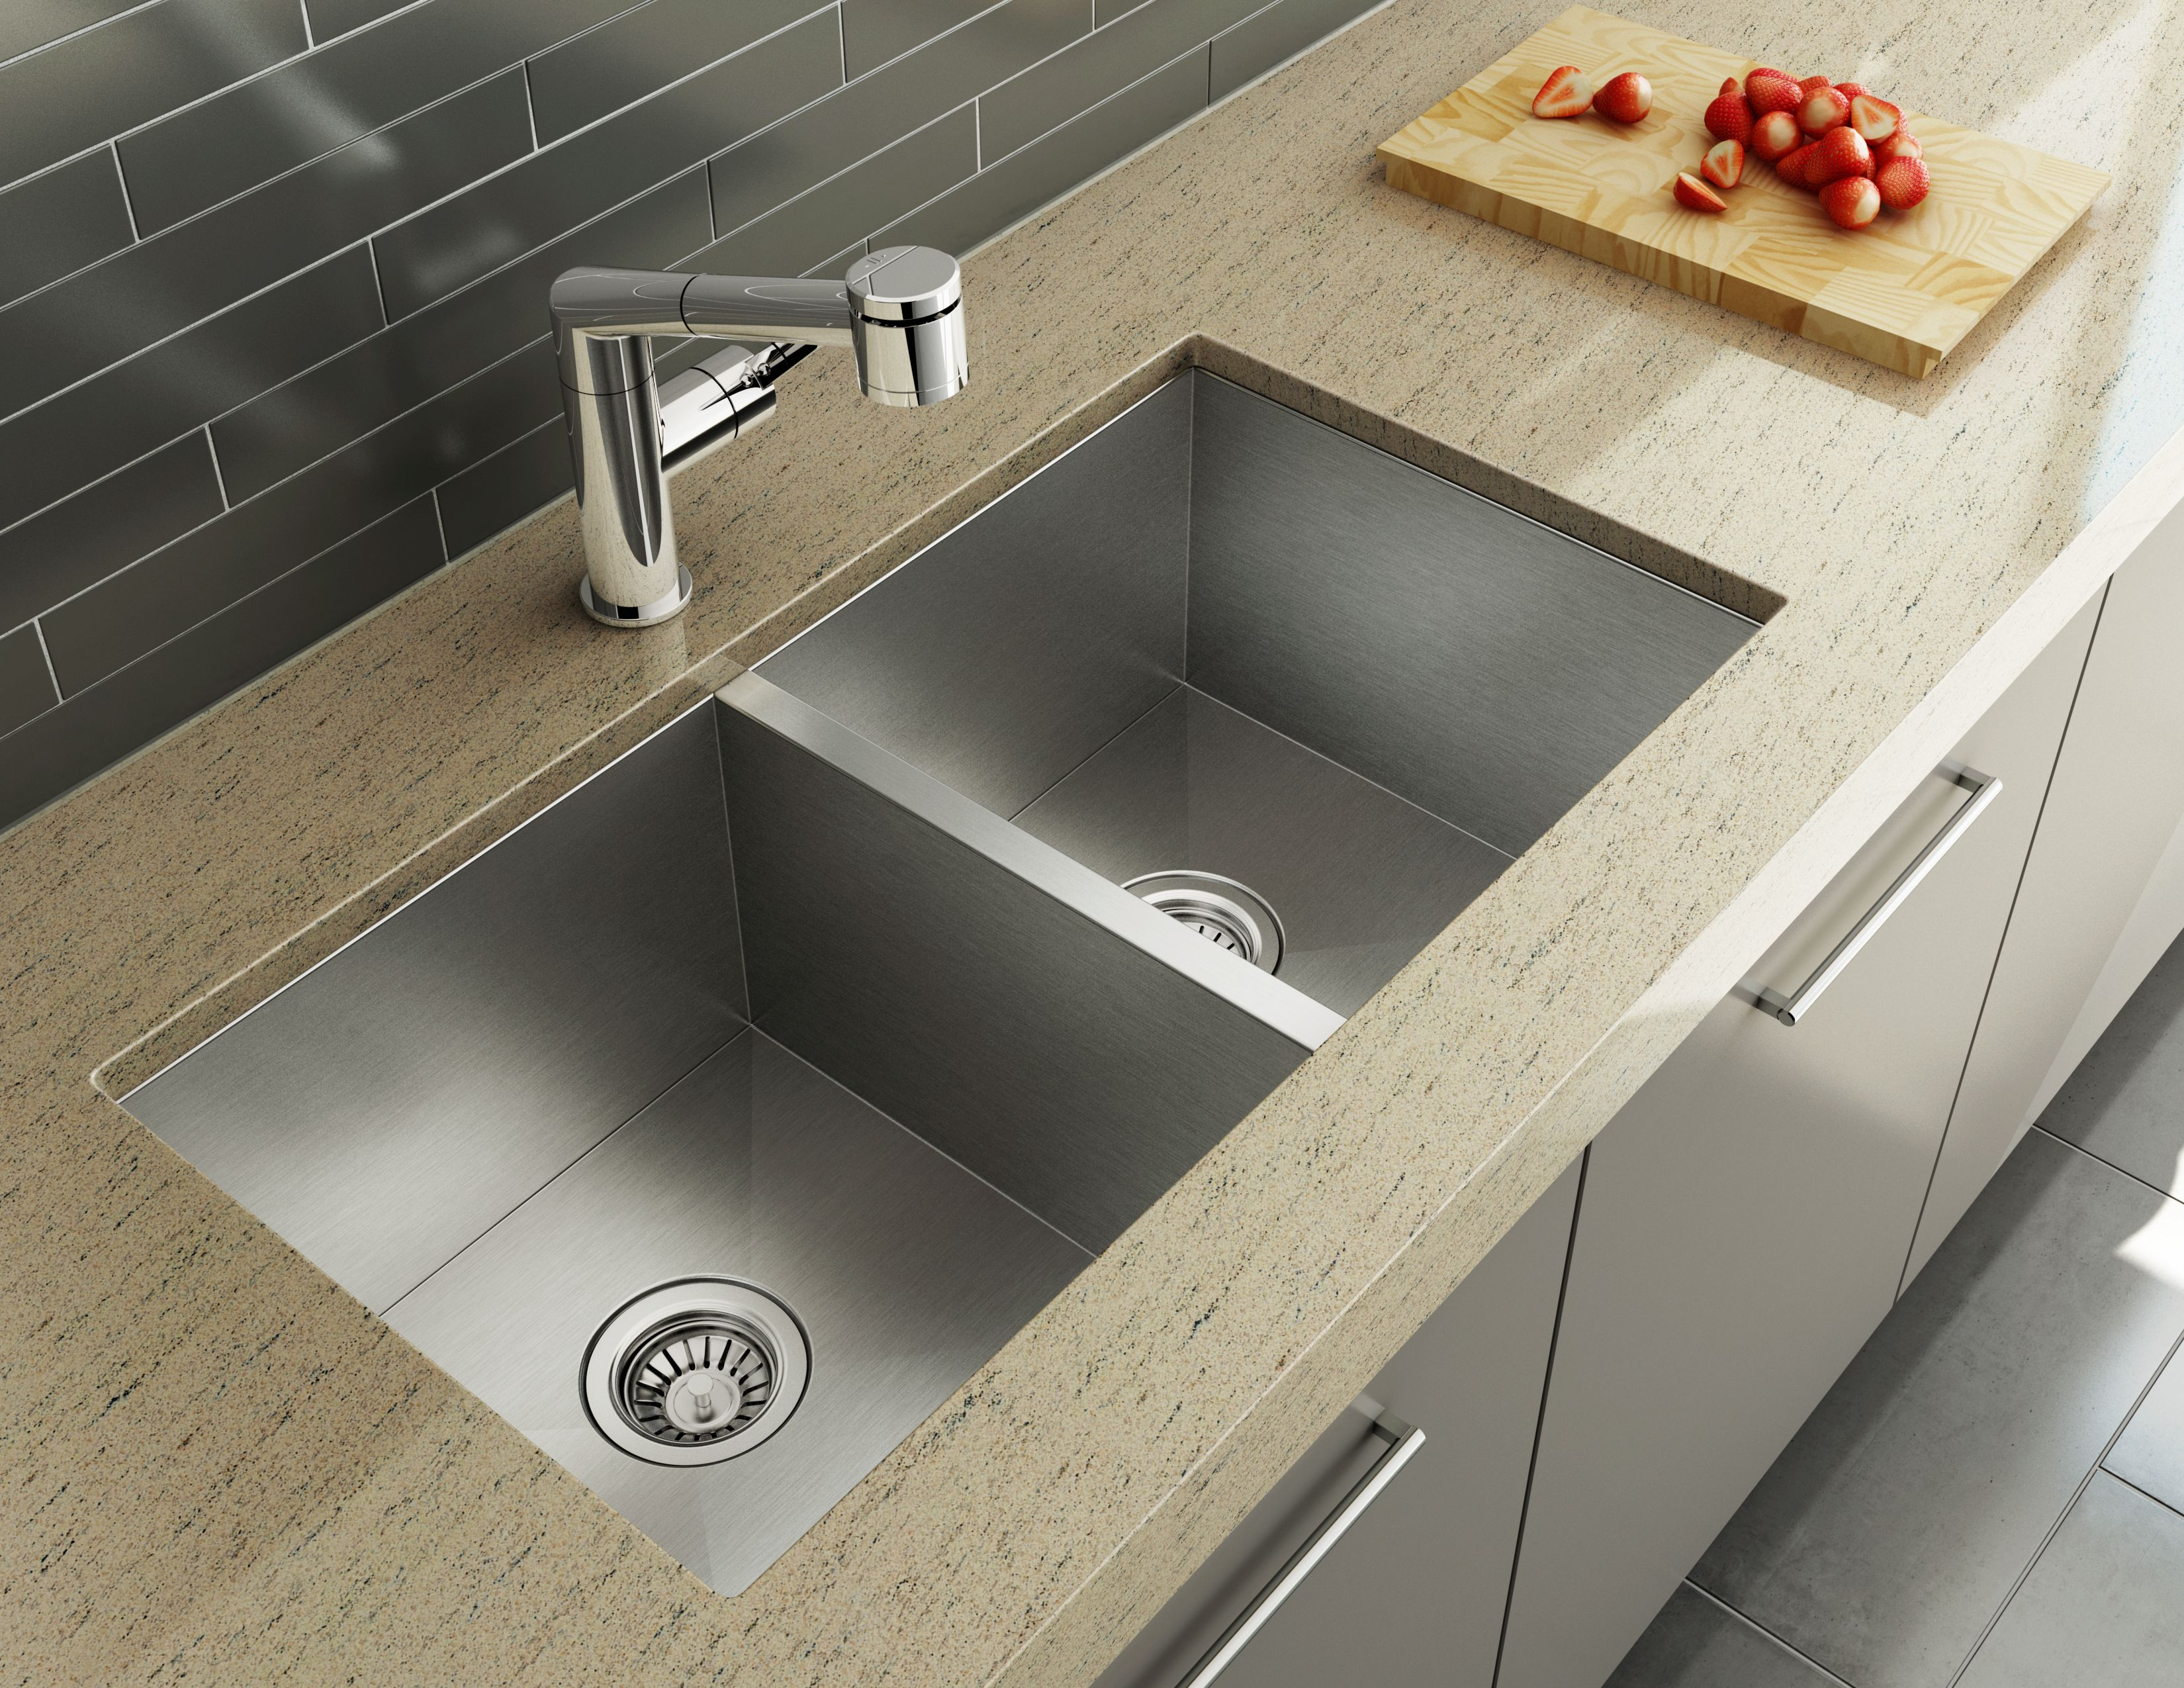 Kitchen sink with matching black glass tap landing and sliding cover - Atelier Kitchen Sink Collection New Condo Kitchen Faucet 20243 Aquabrass Newcondo